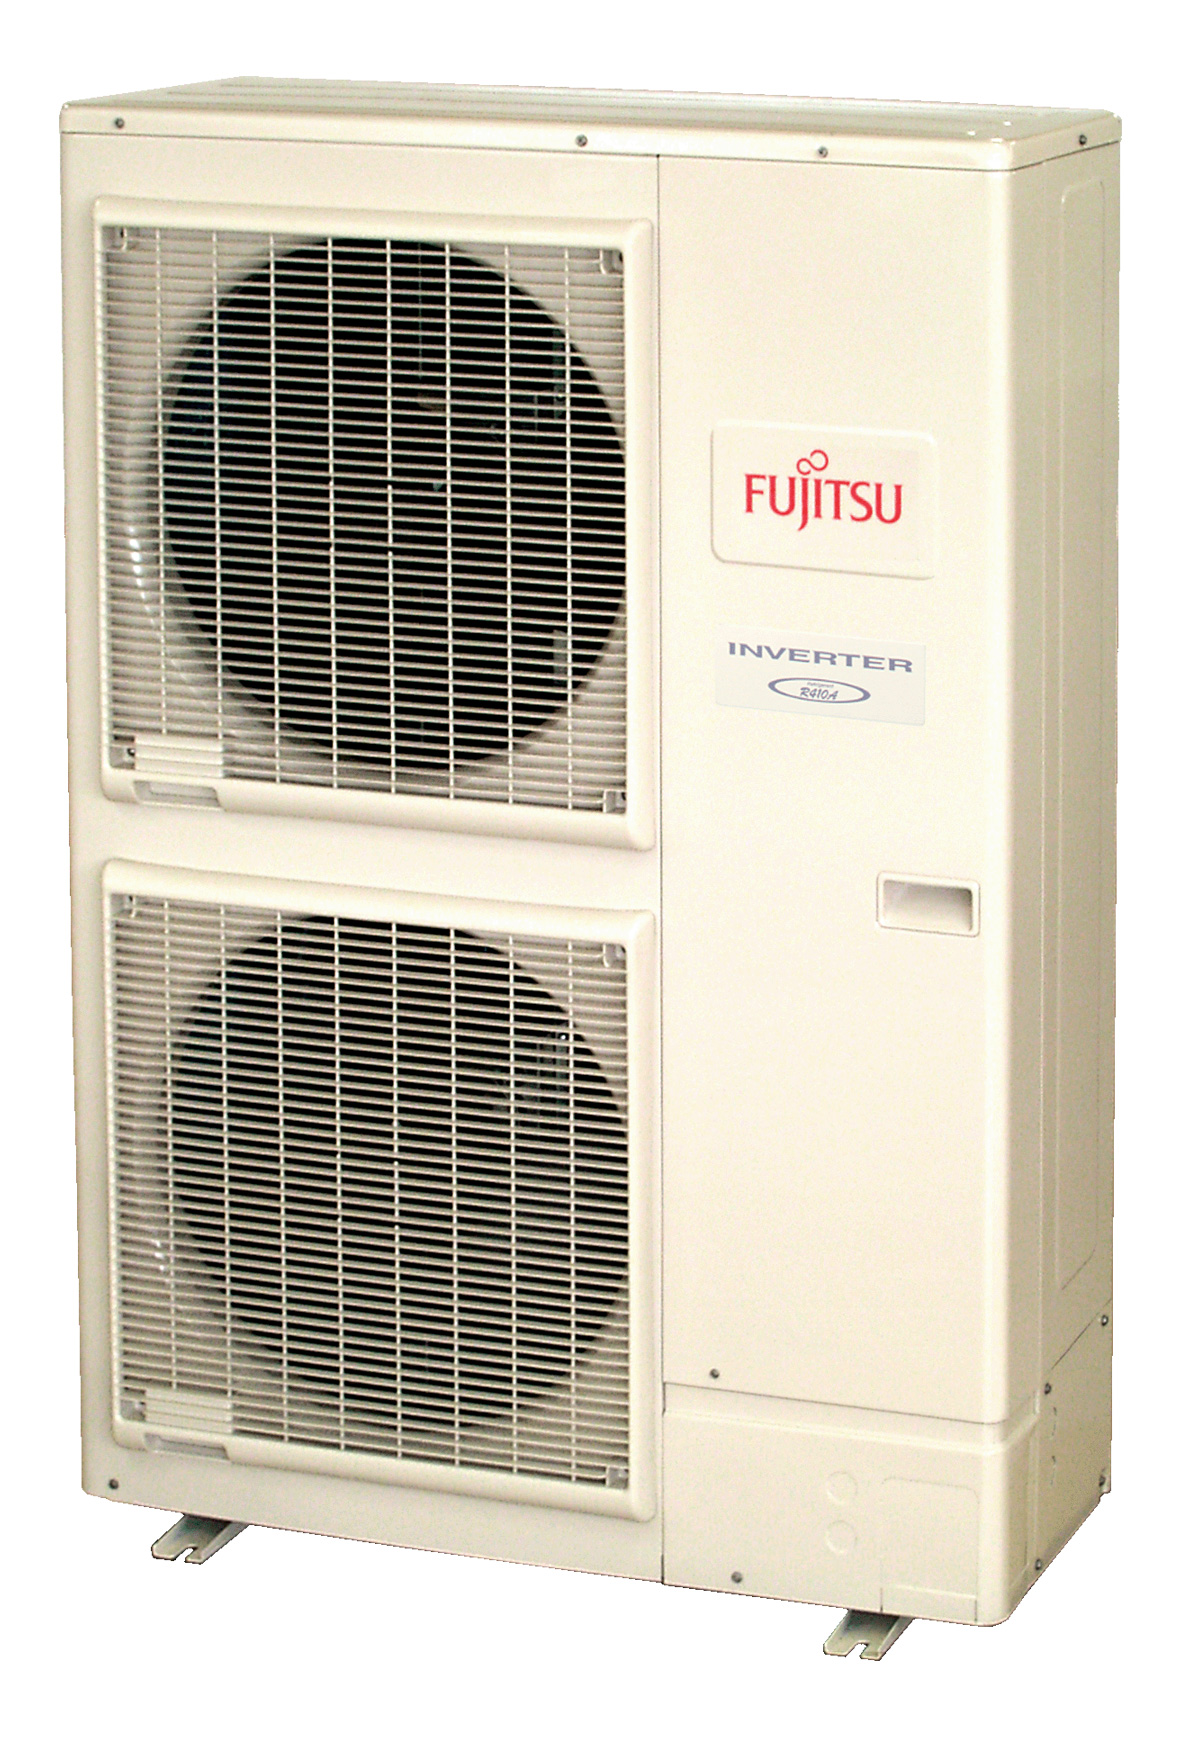 #967D35 Air Conditioning RLBS Building Facilities Ltd Highly Rated 979 Air Handling Unit Working Principle wallpapers with 1181x1761 px on helpvideos.info - Air Conditioners, Air Coolers and more